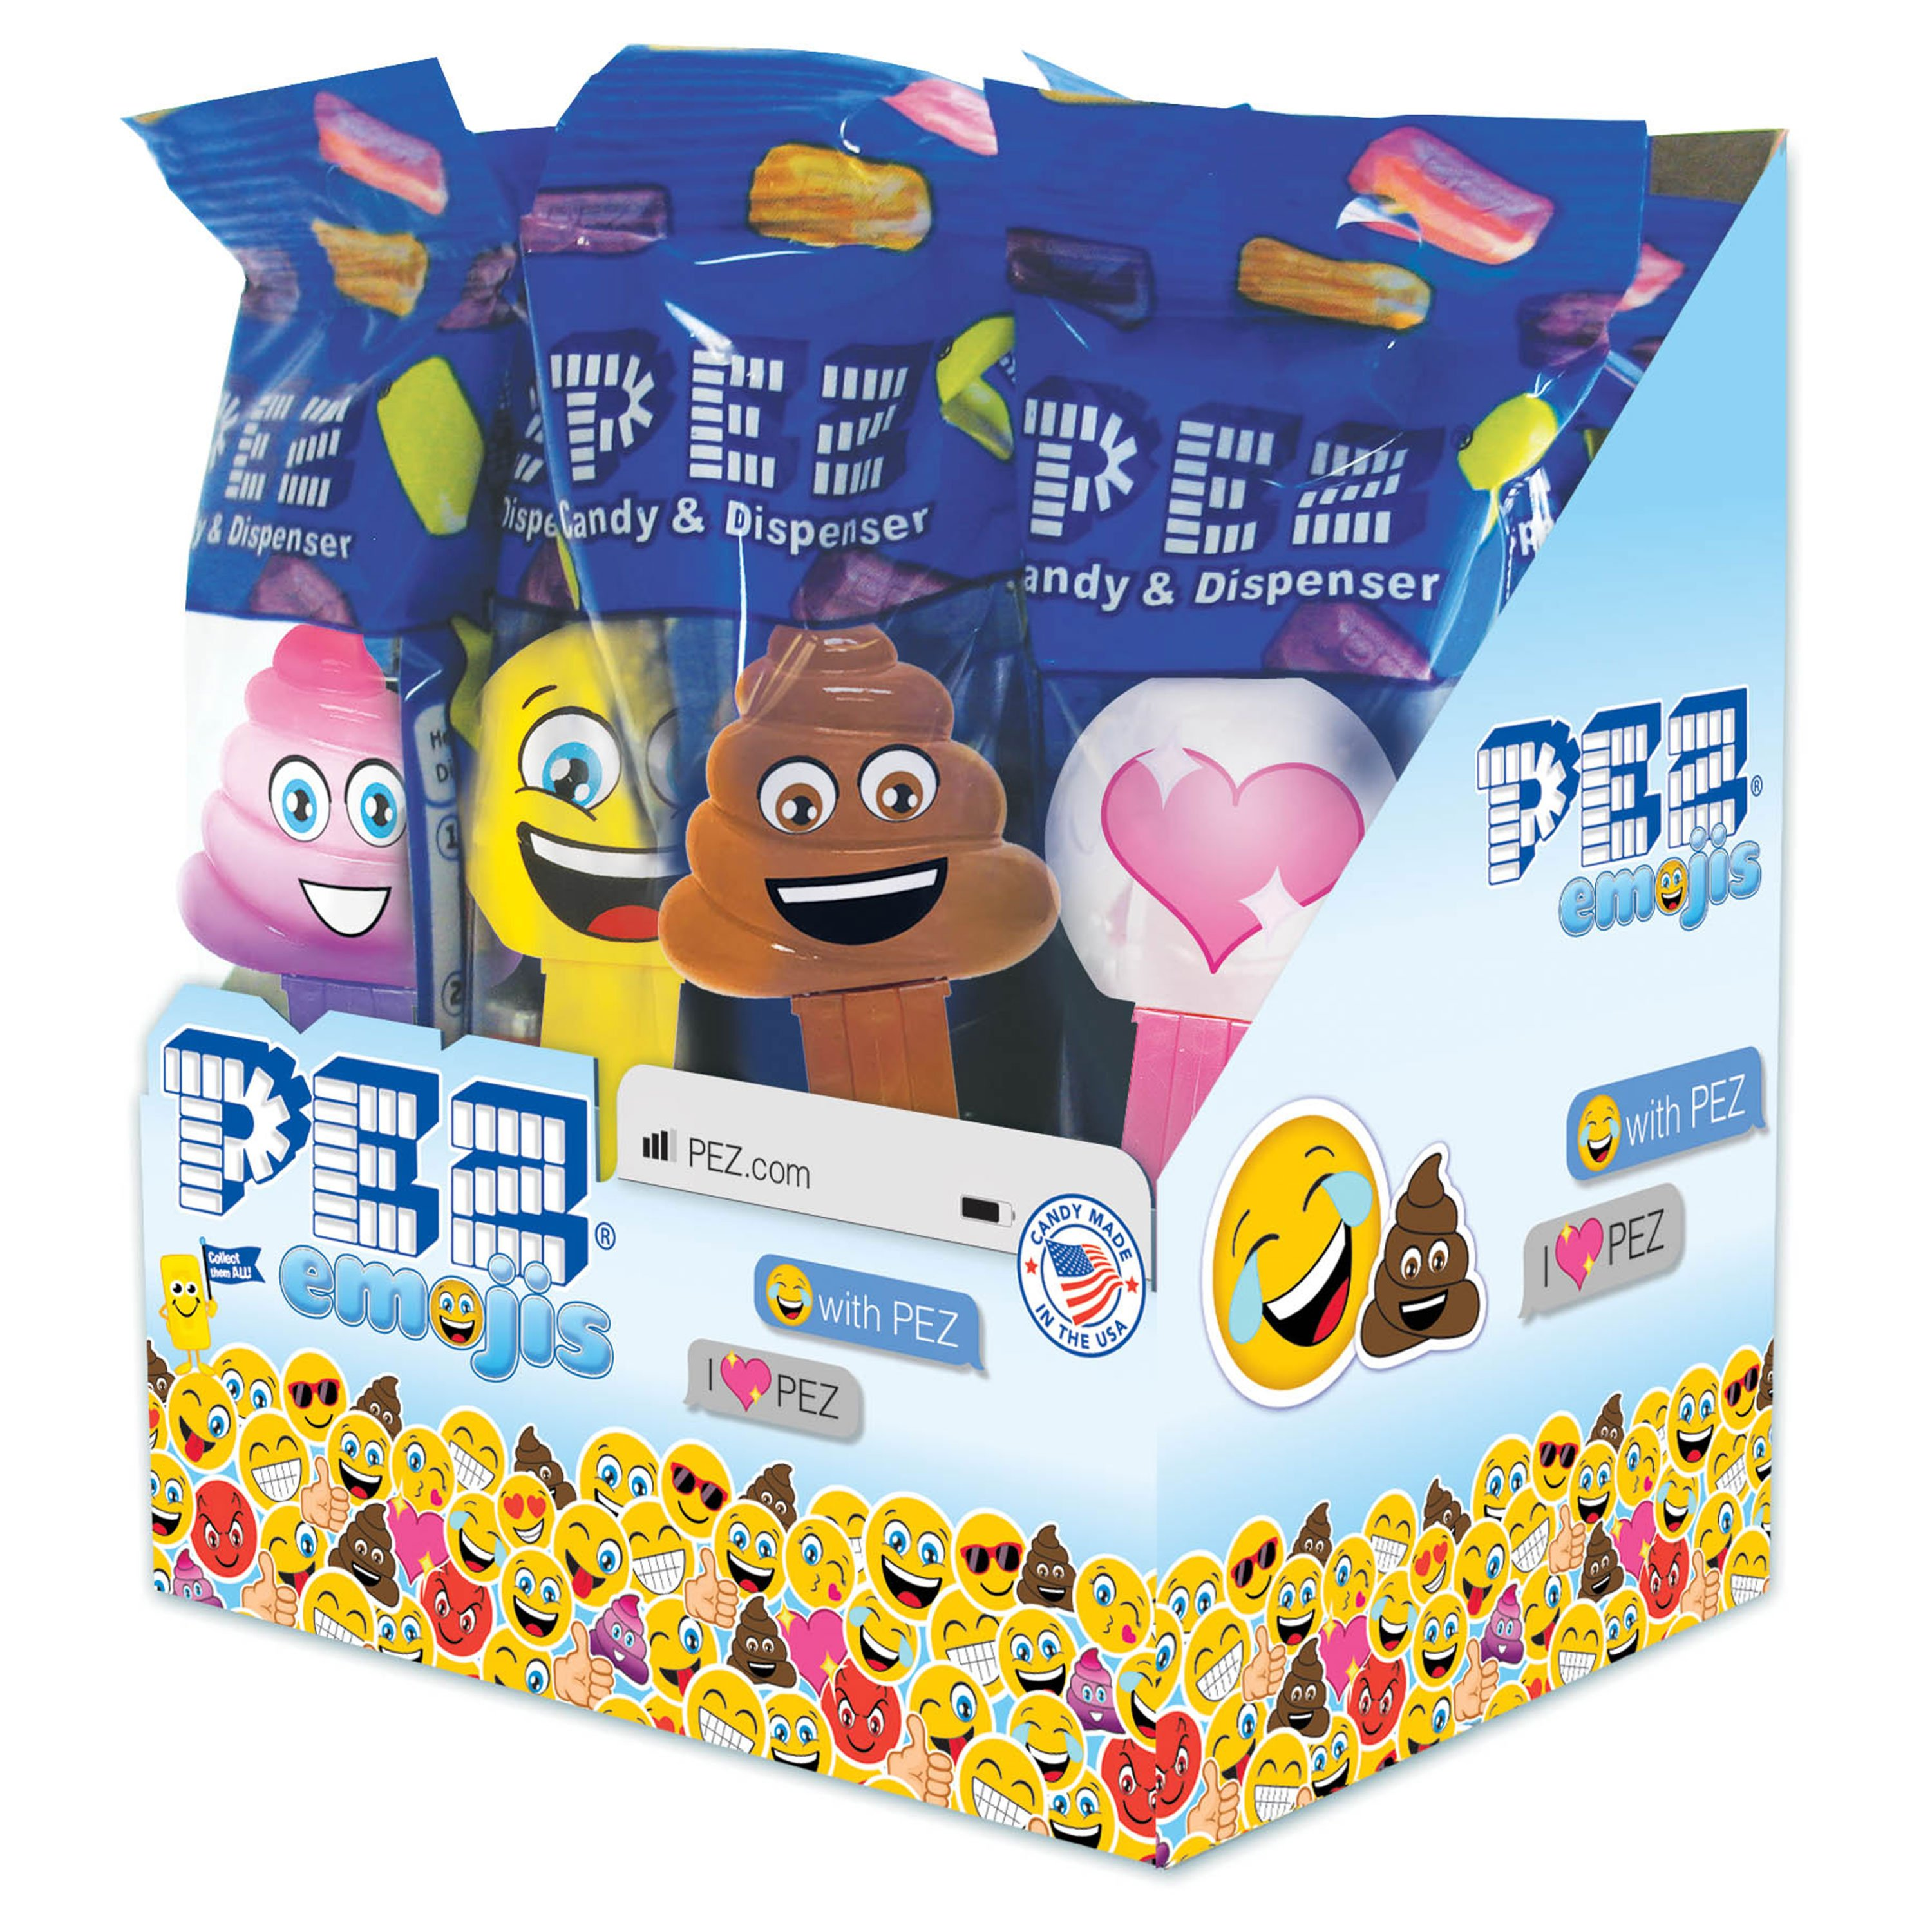 PEZ Candy PEZemojis Assortment, candy dispenser plus 2 rolls of assorted fruit candy, box of 12